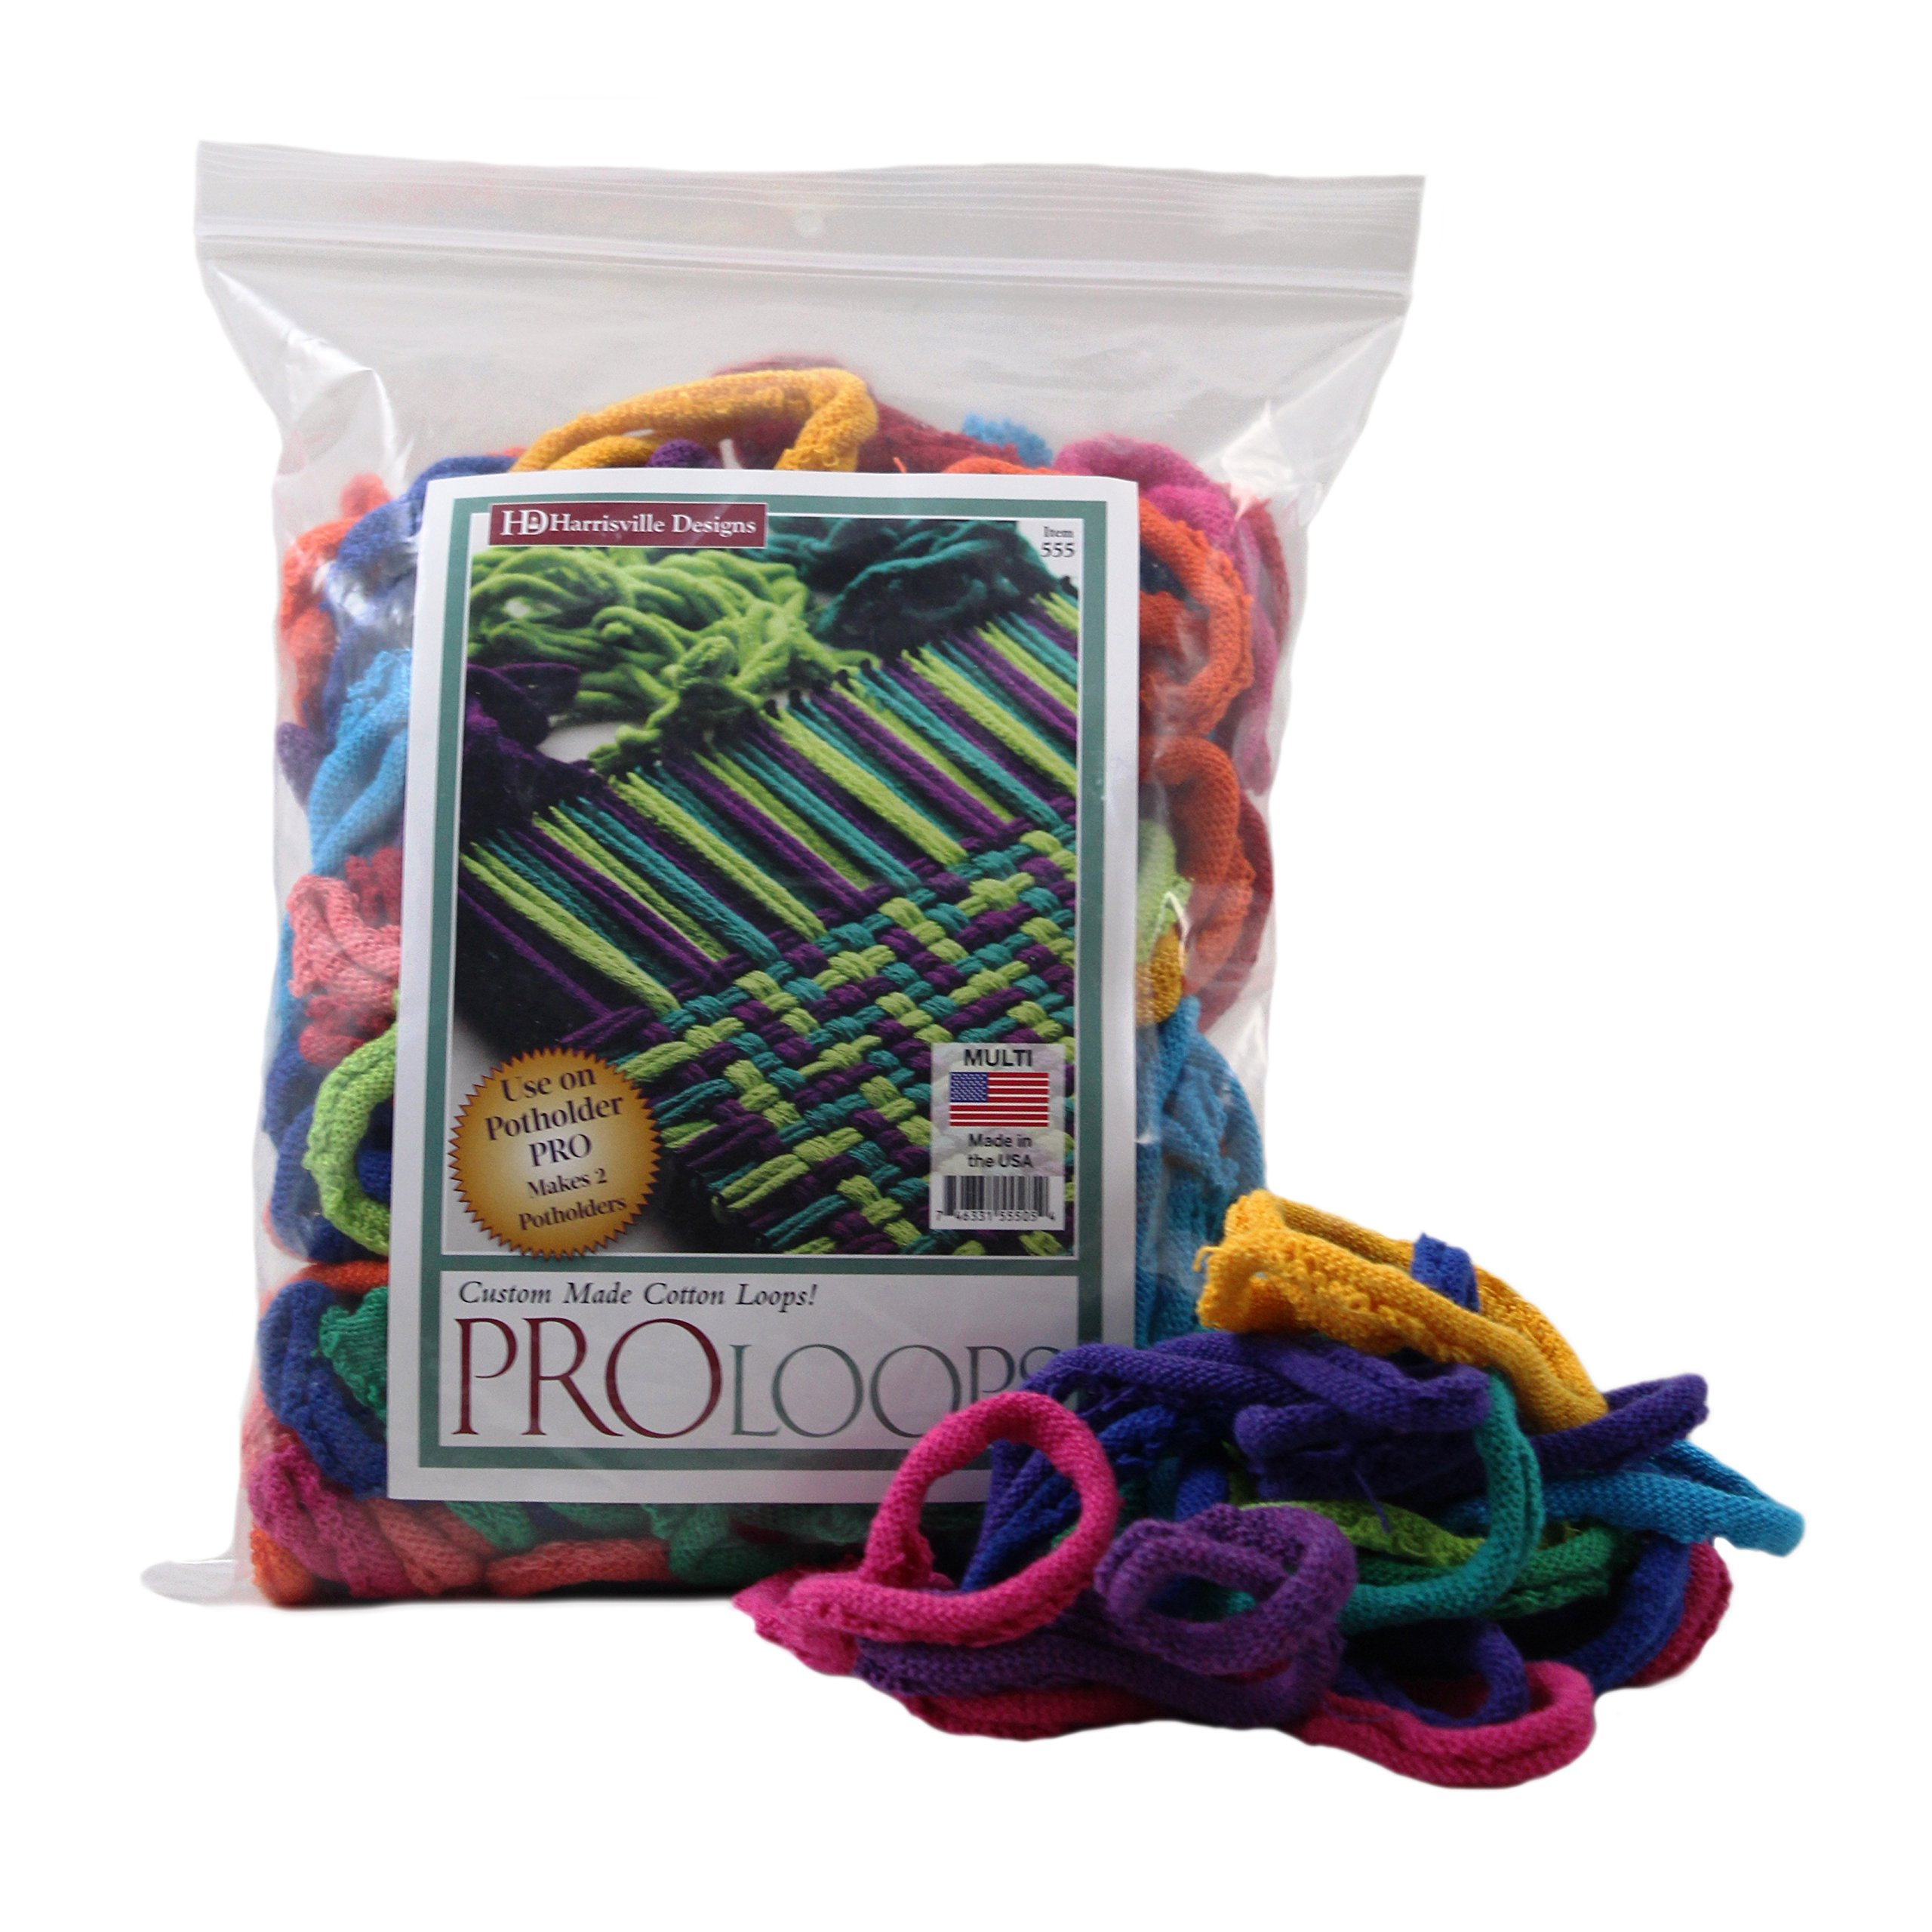 Harrisville Designs PRO 10'' Cotton Loops, Multiple Color Pack - Makes 2 Potholders by Harrisville Designs